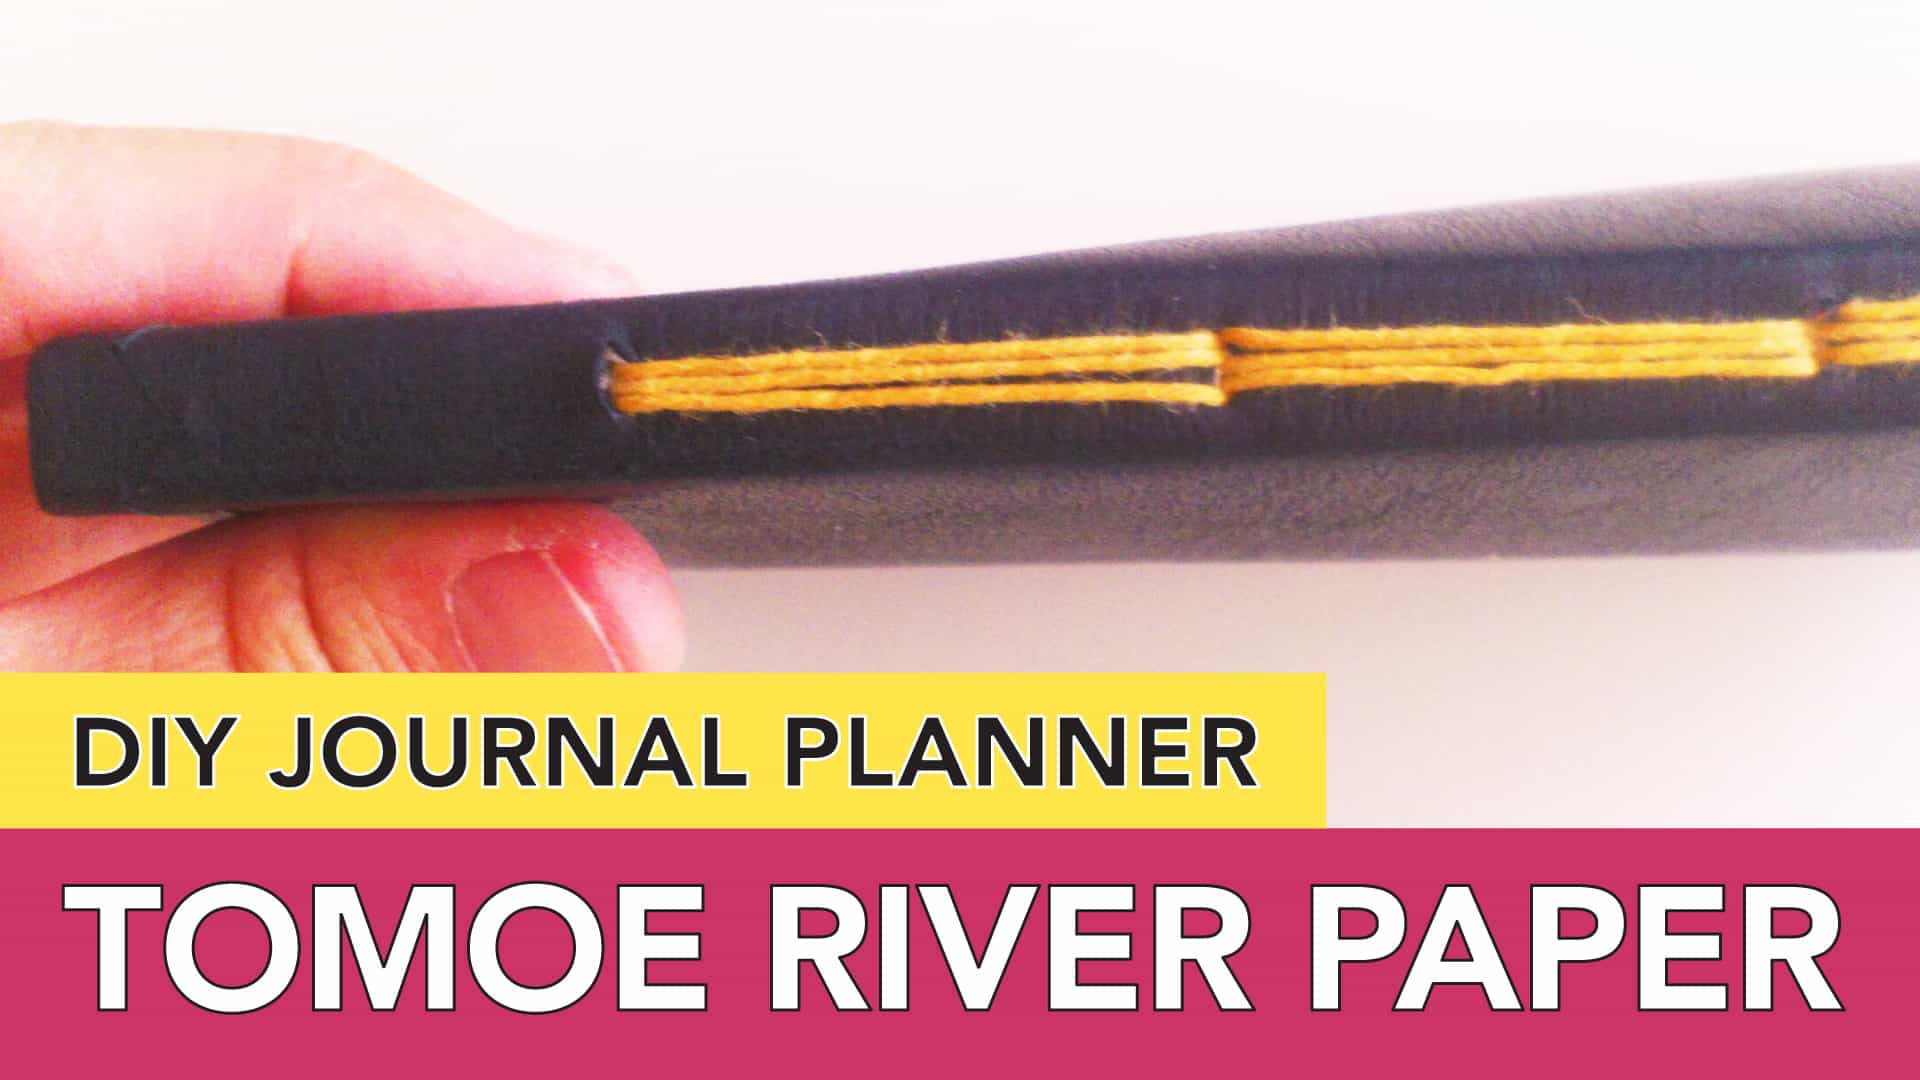 DIY Journal Planner | Tomoe River Paper